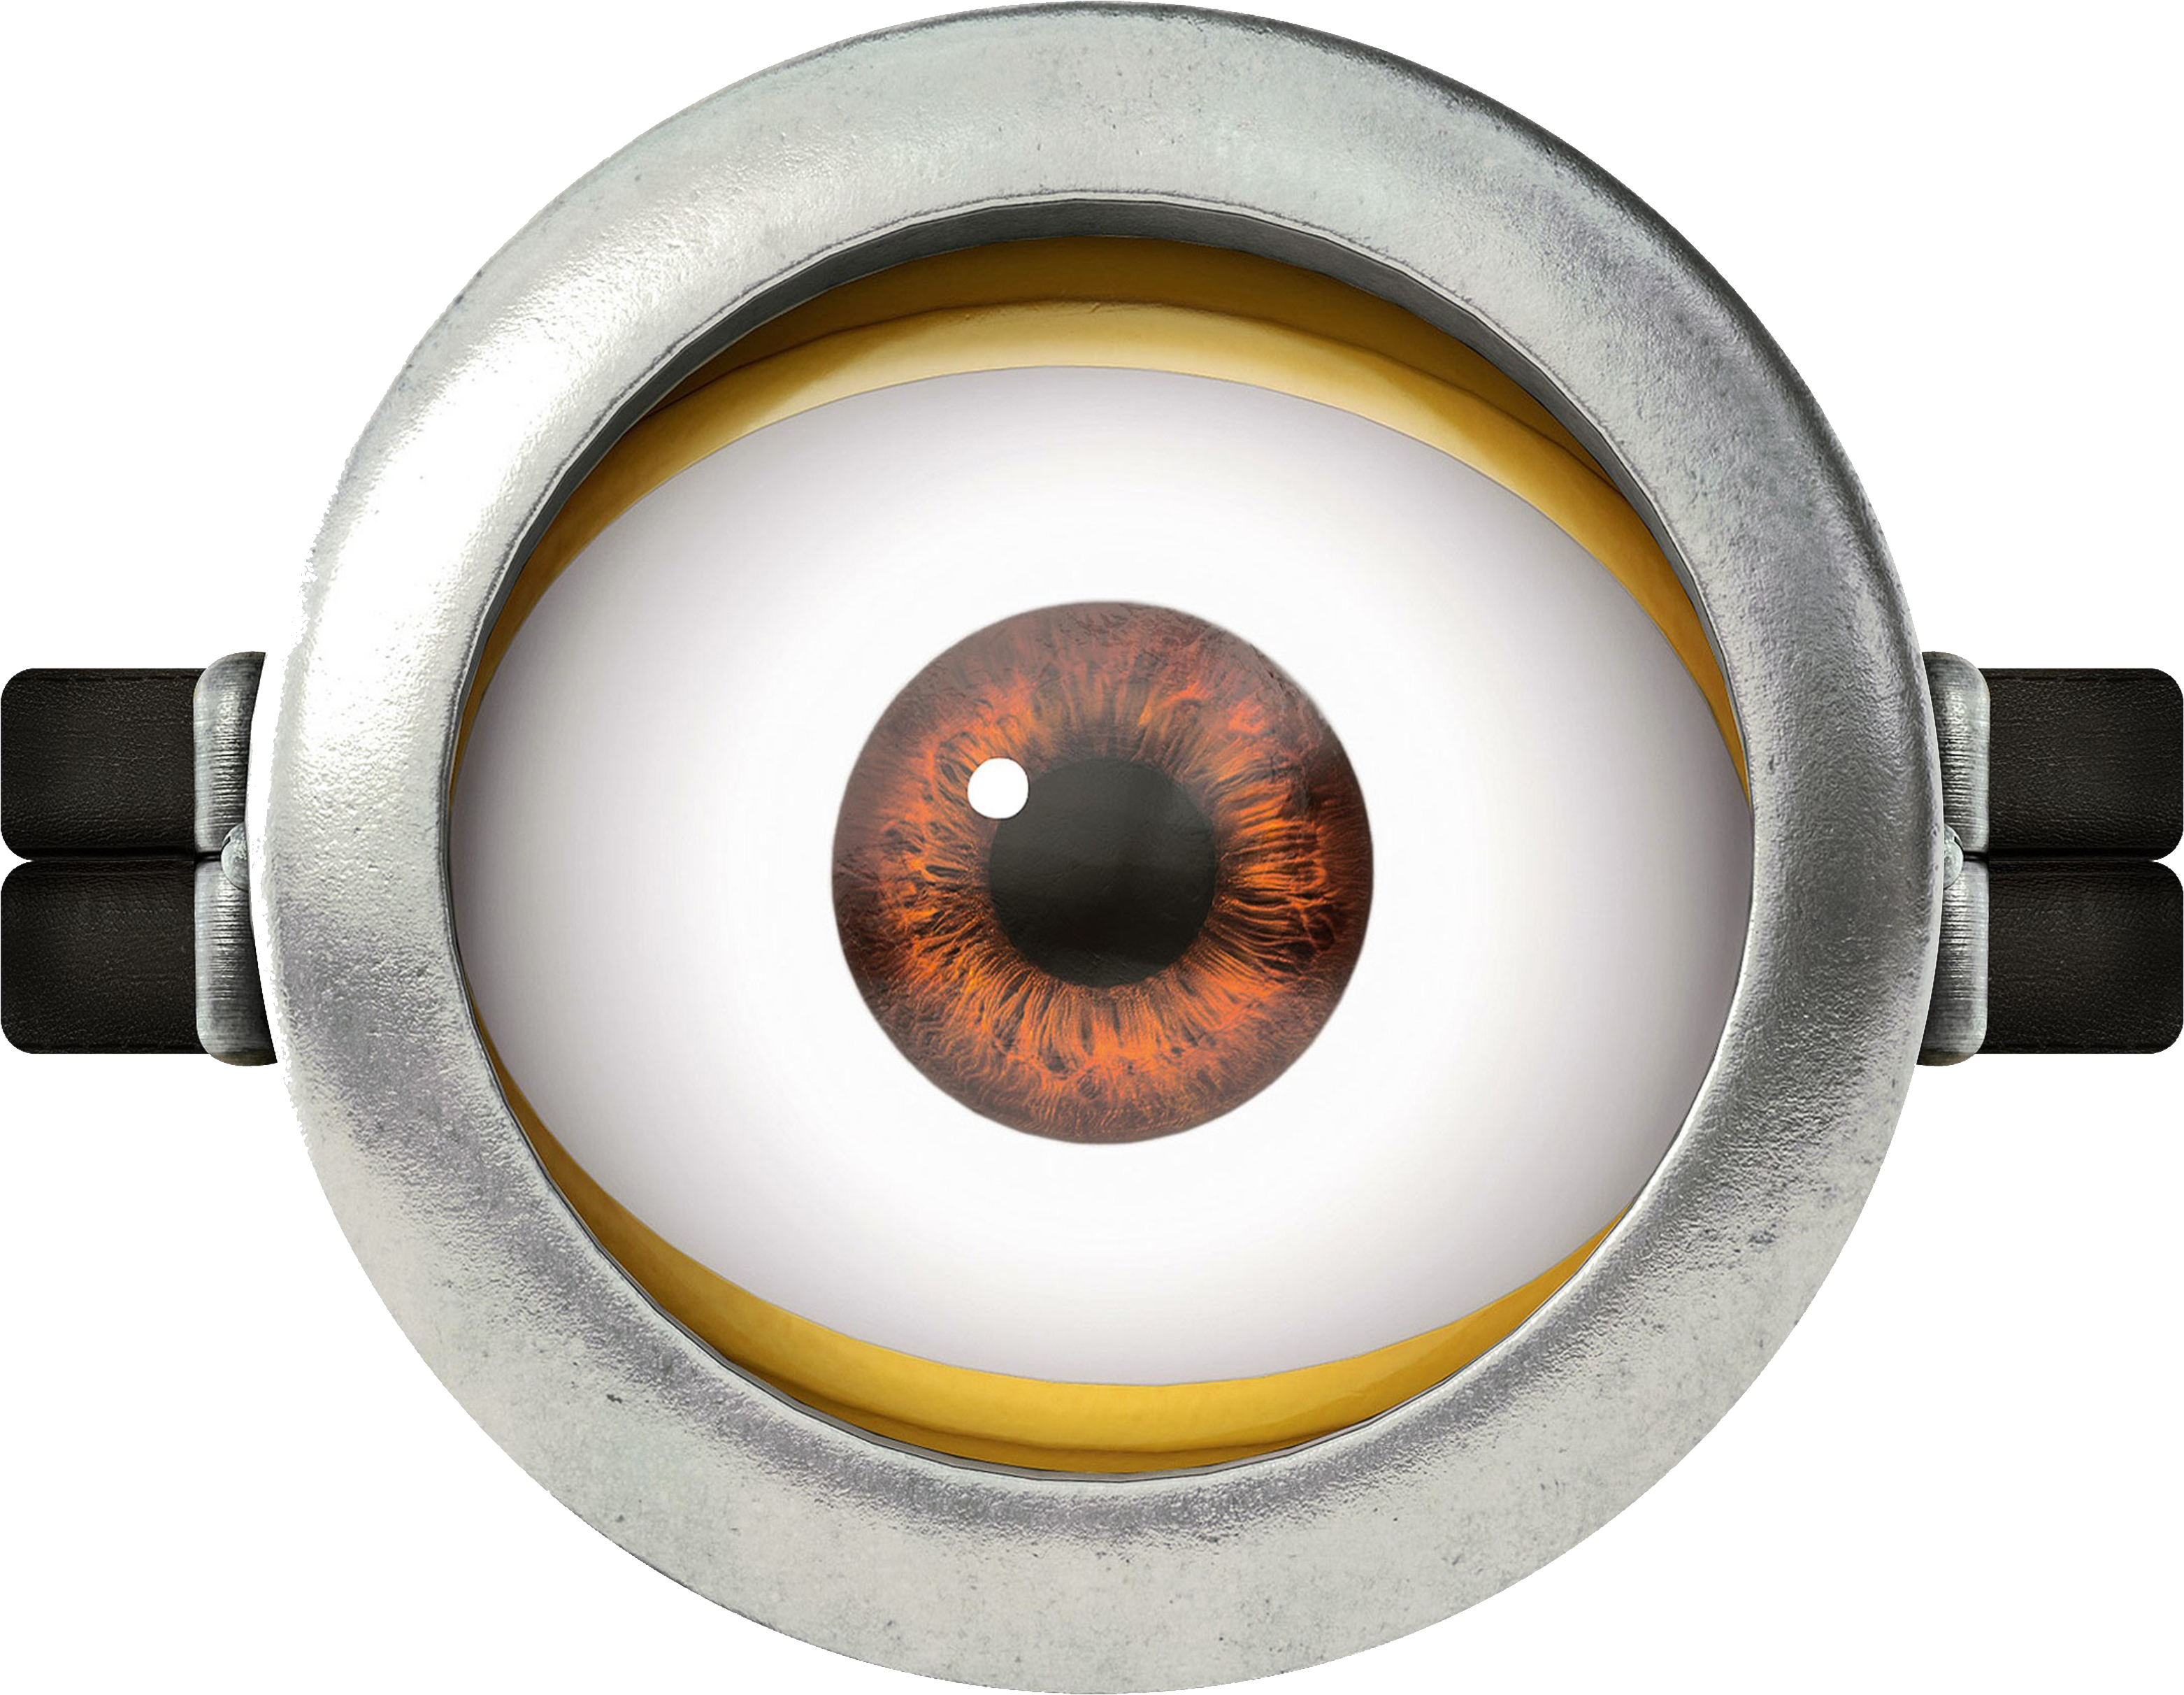 photograph about Minion Eye Printable identified as Minion Eyes Png Totally free Minion Eyes.png Clear Illustrations or photos